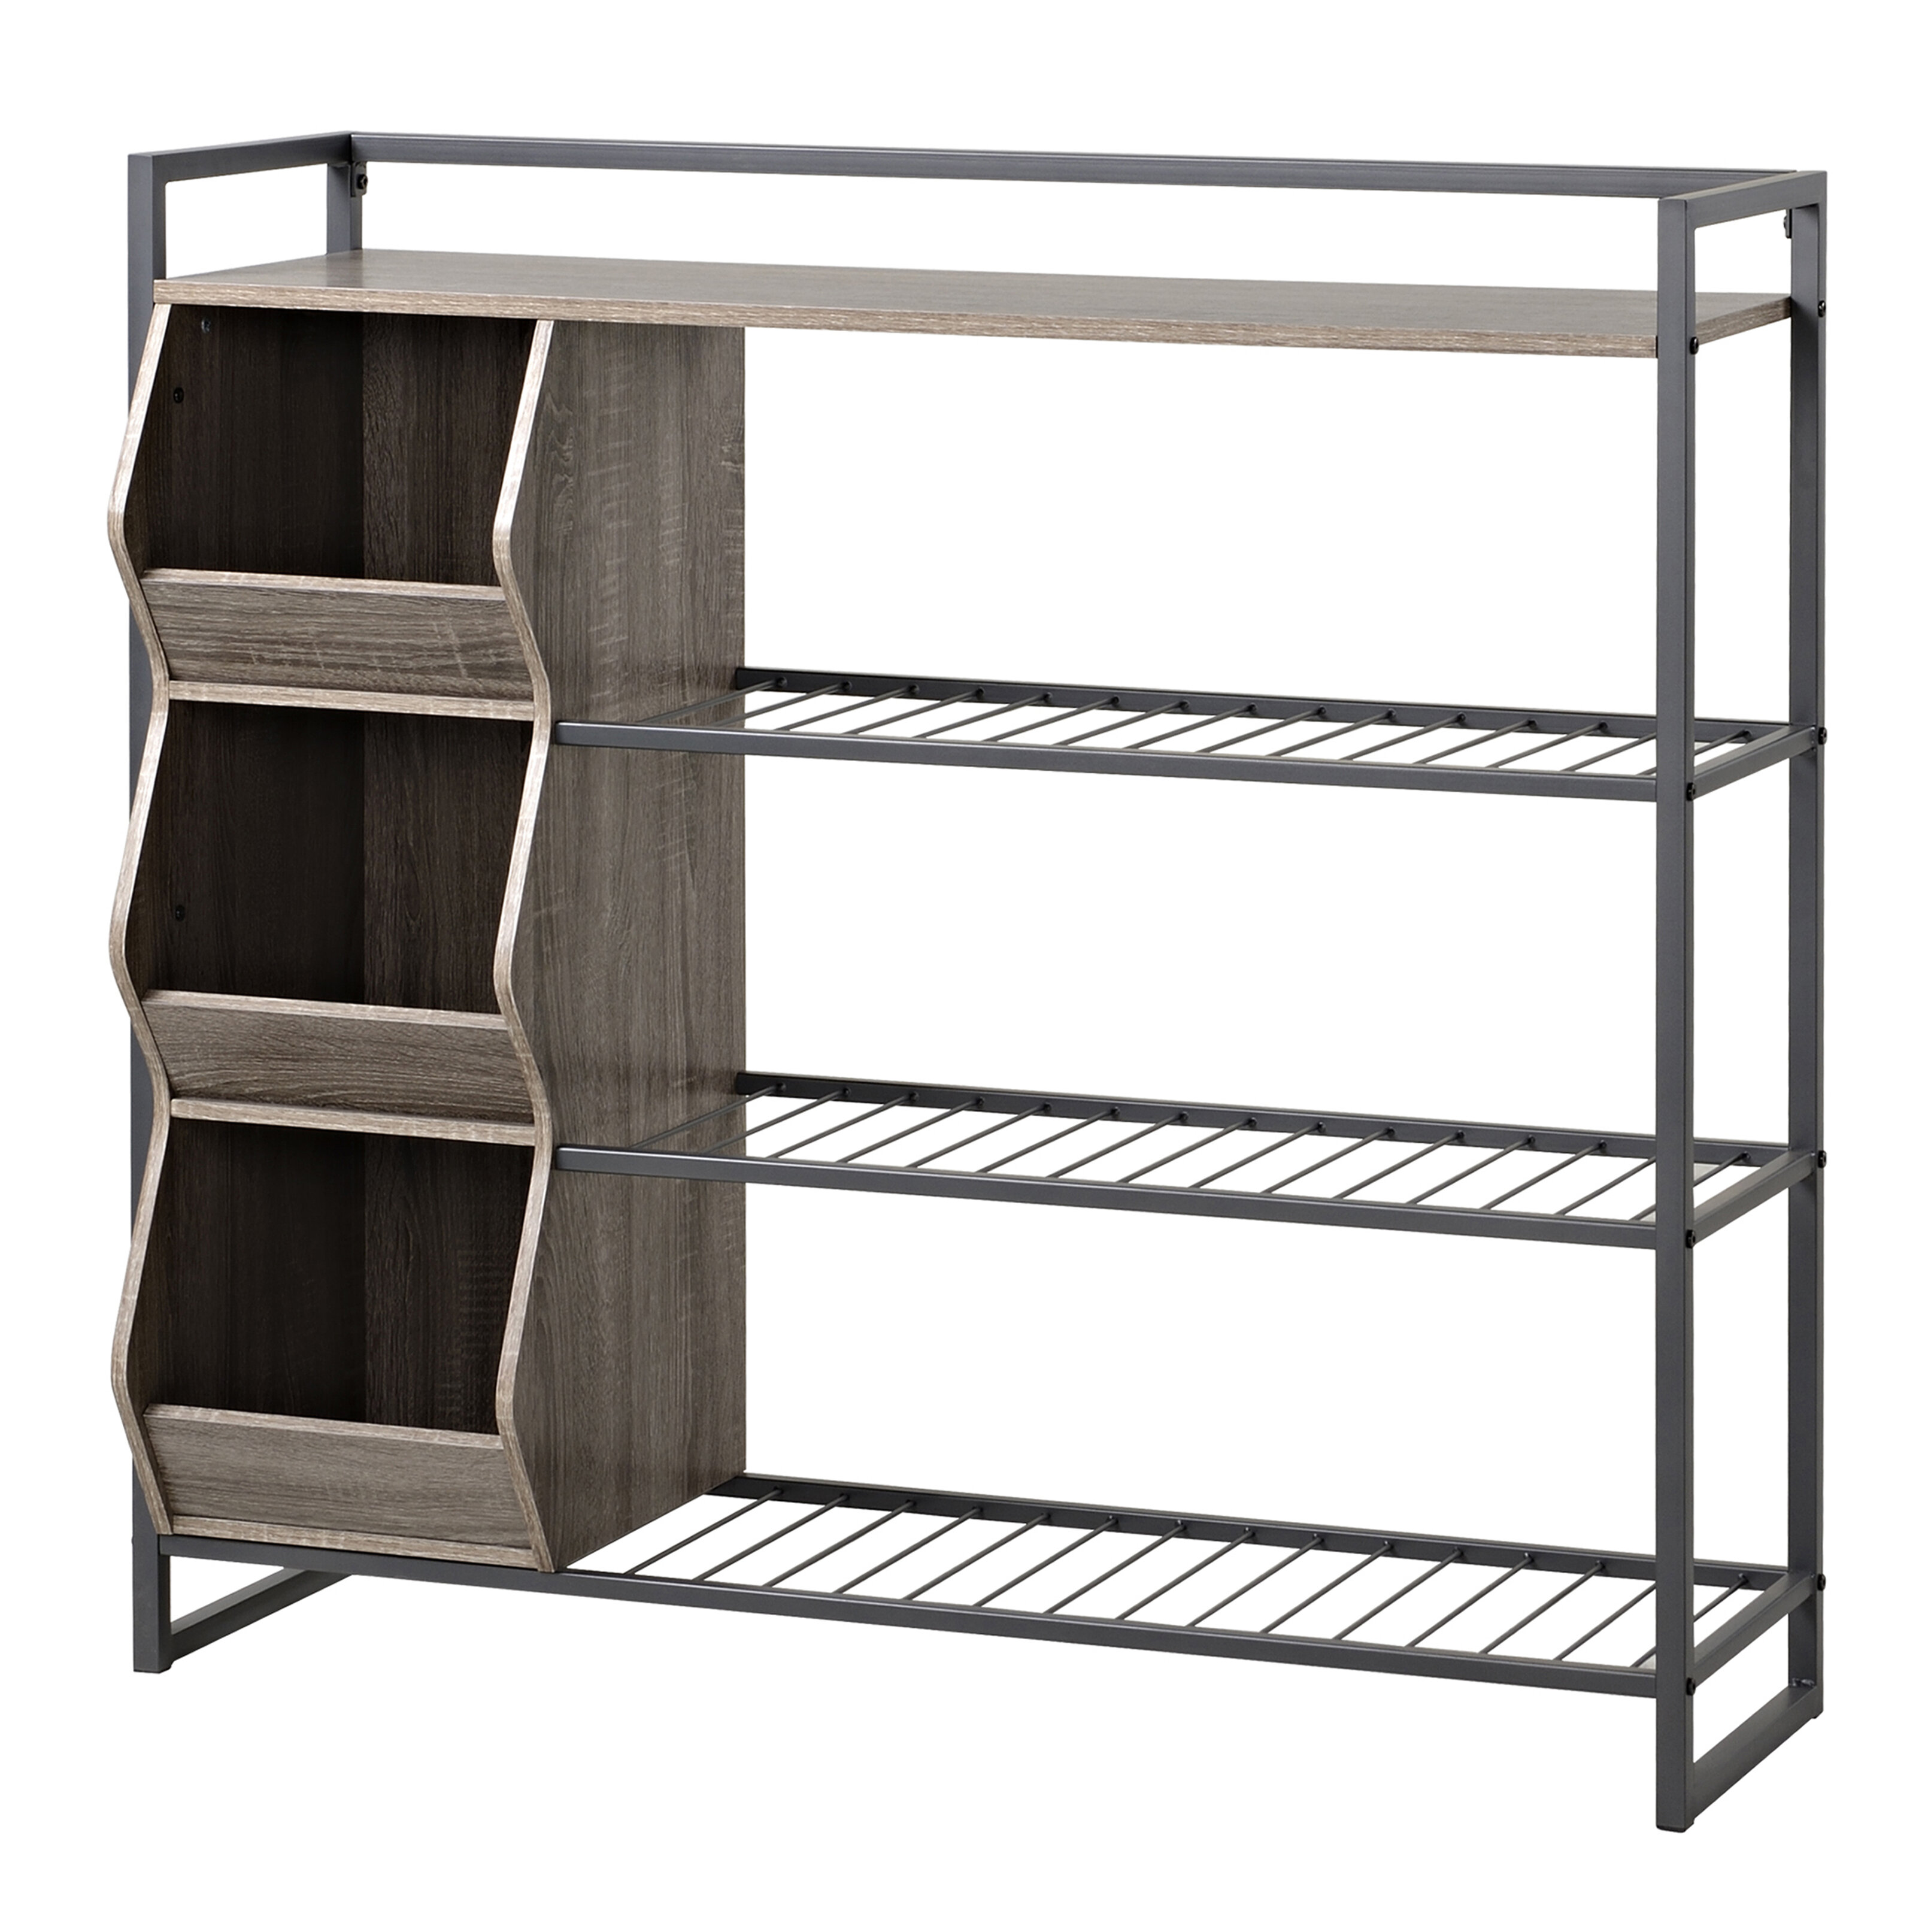 finish hearts shelves rack attic cheap stackable wood organizer shoe cubby pin white in